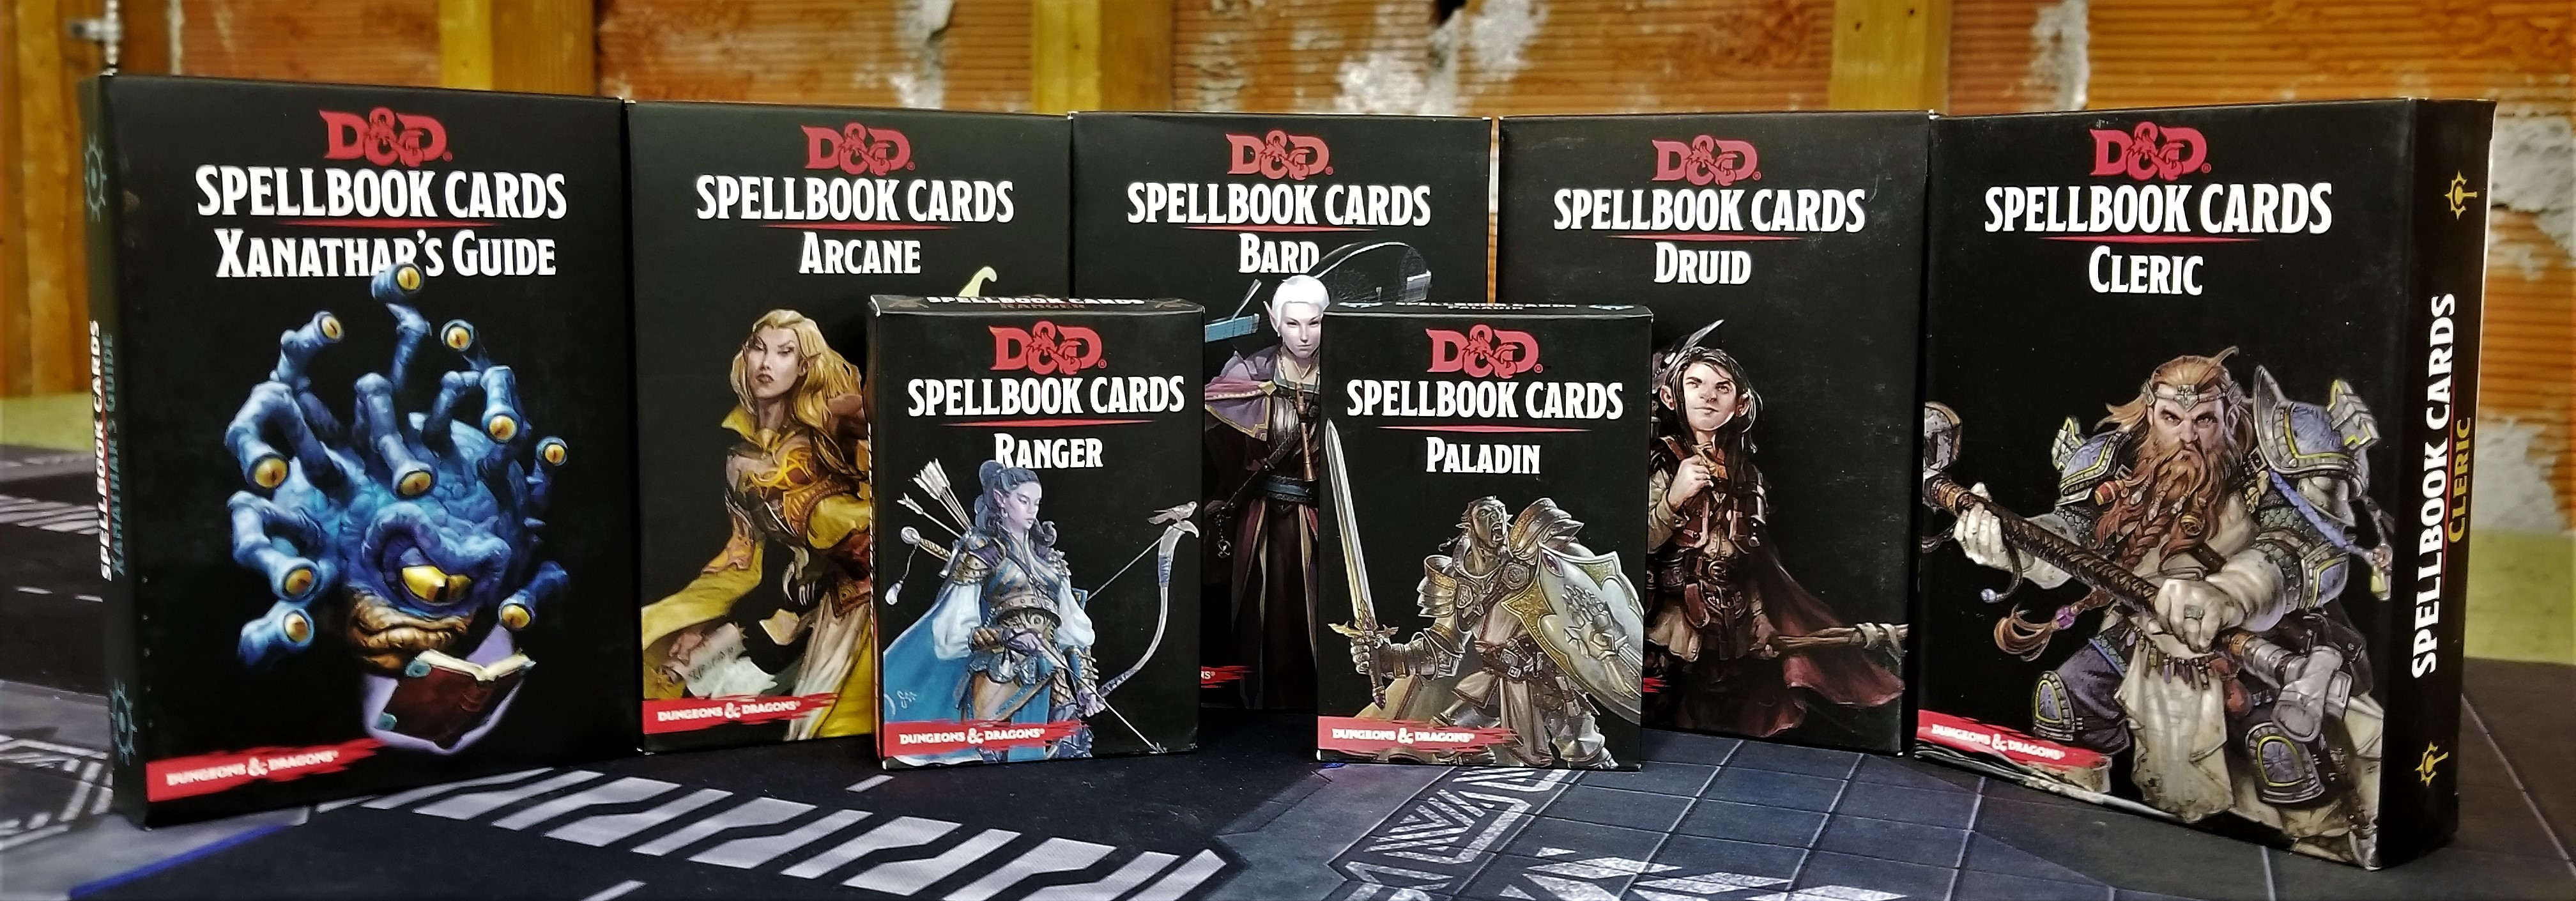 SpellBookcards